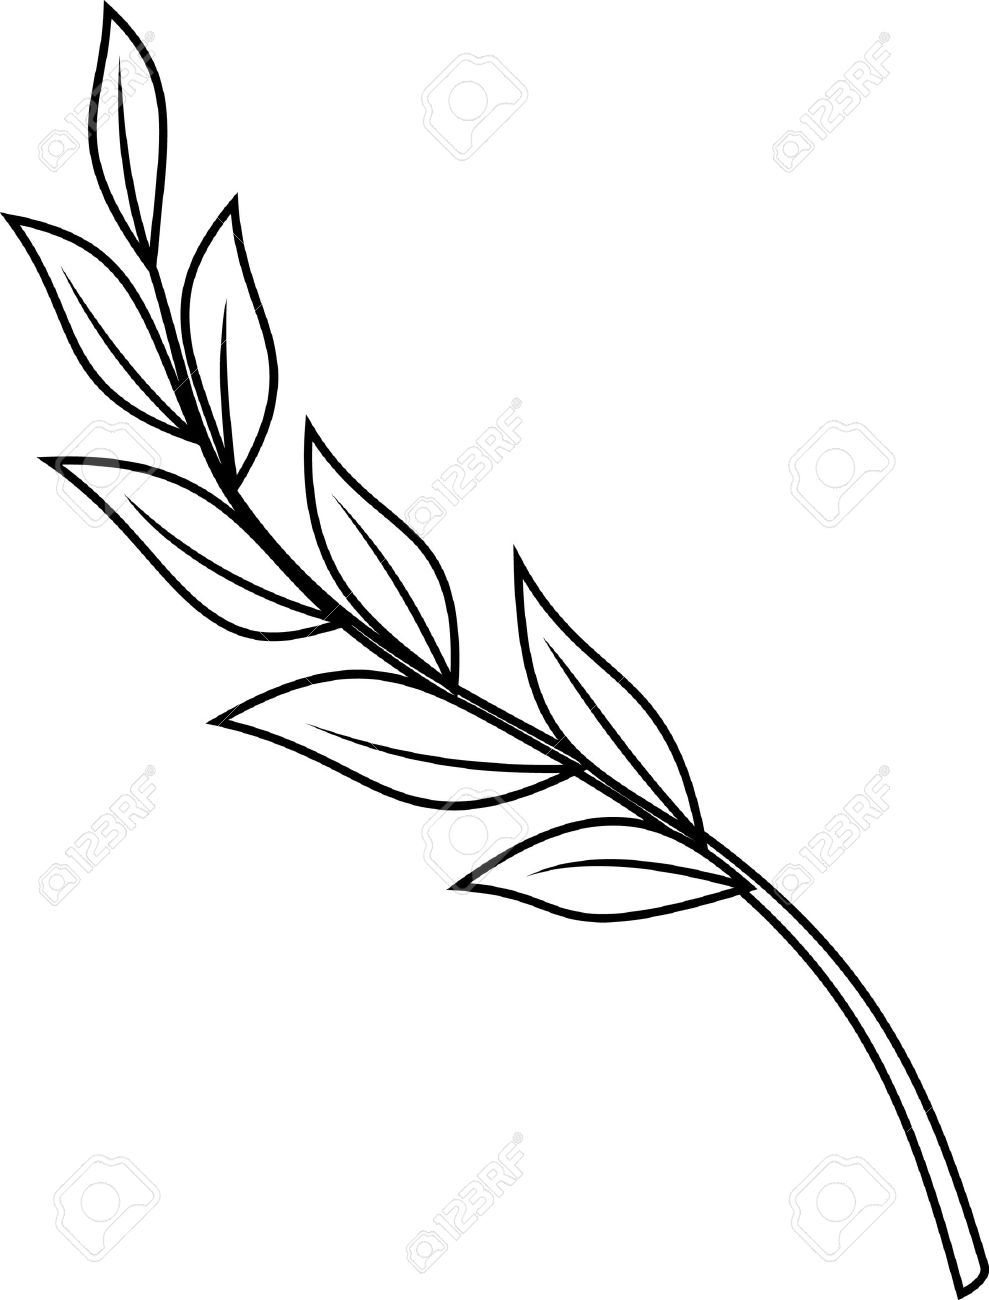 6697fd8e4715c Laurel Branch Stock Vector Illustration And Royalty Free Laurel ...